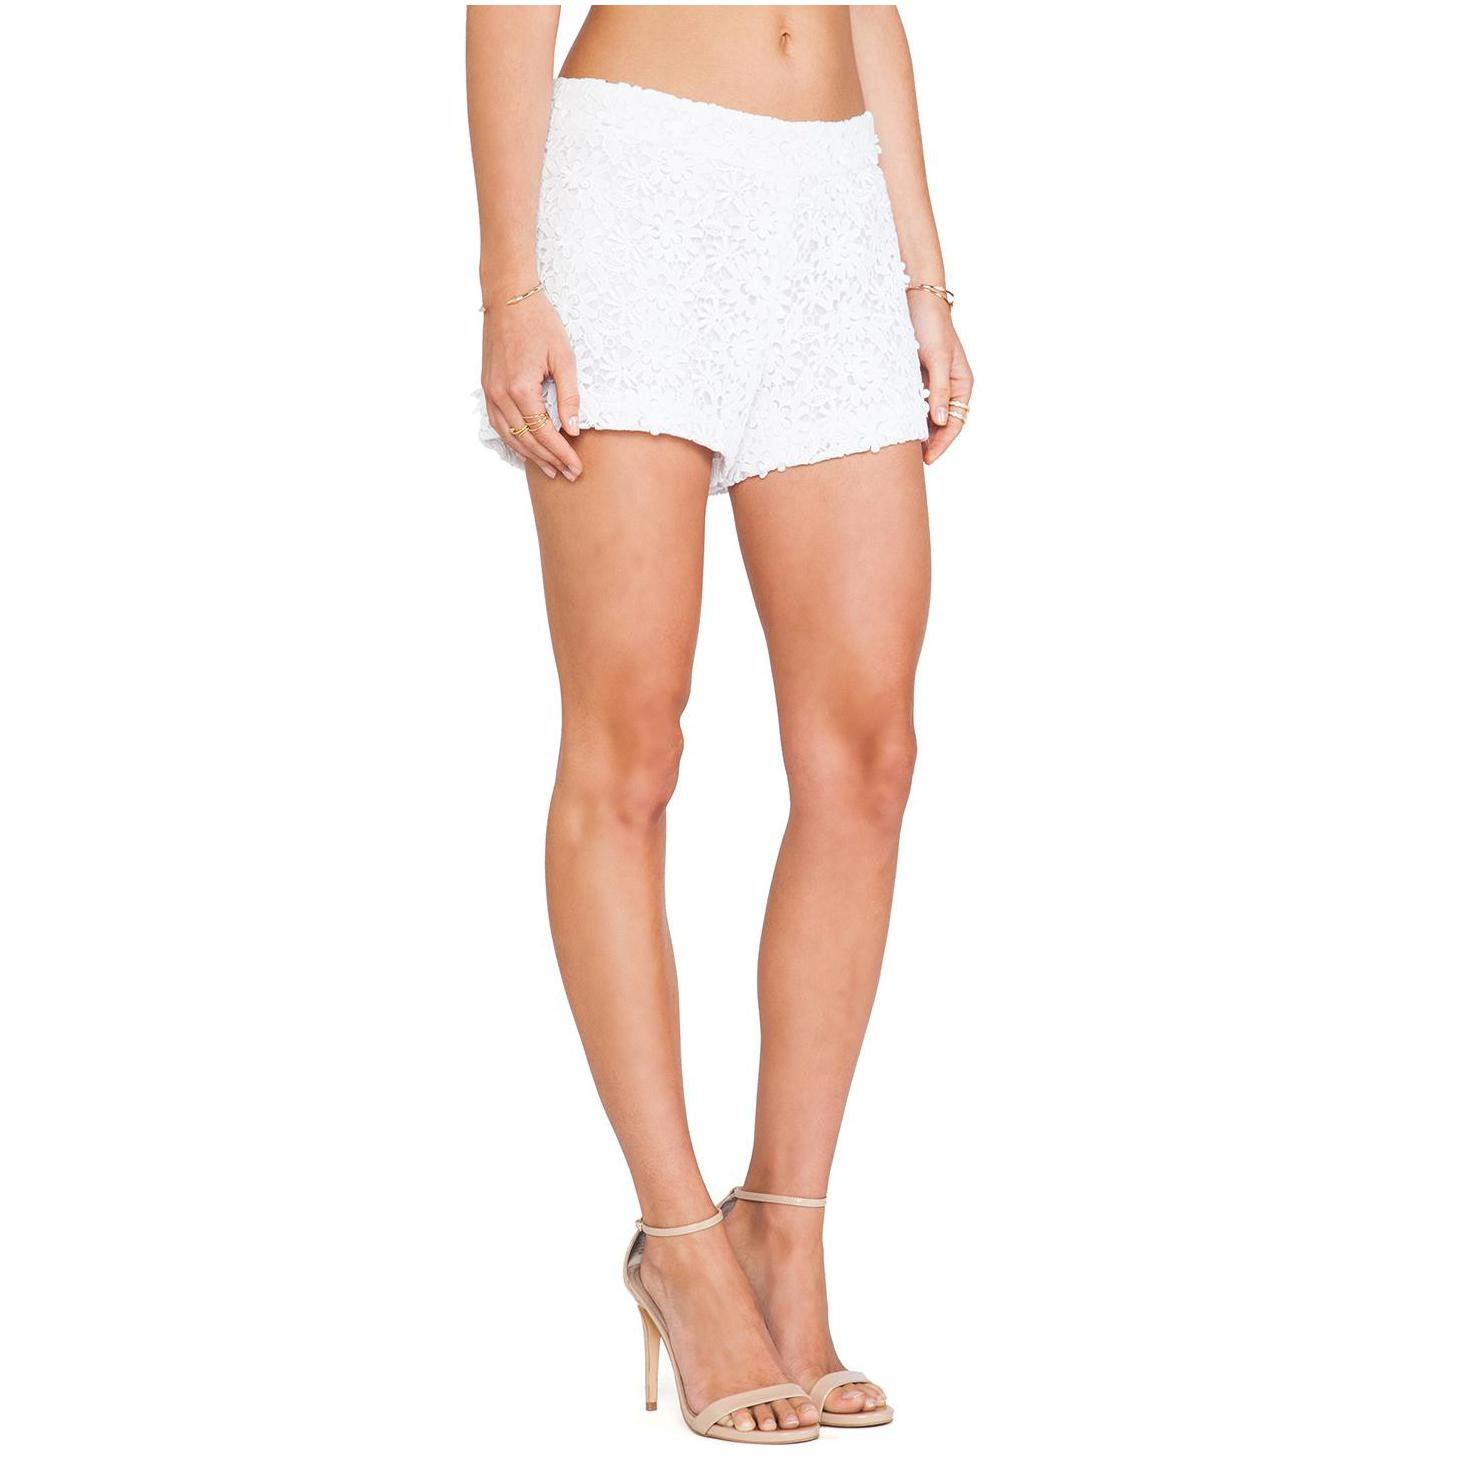 Crochet Shorts Womens Inspirational Alice Olivia Crochet Lace Shorts for Women Of Lovely 46 Photos Crochet Shorts Womens